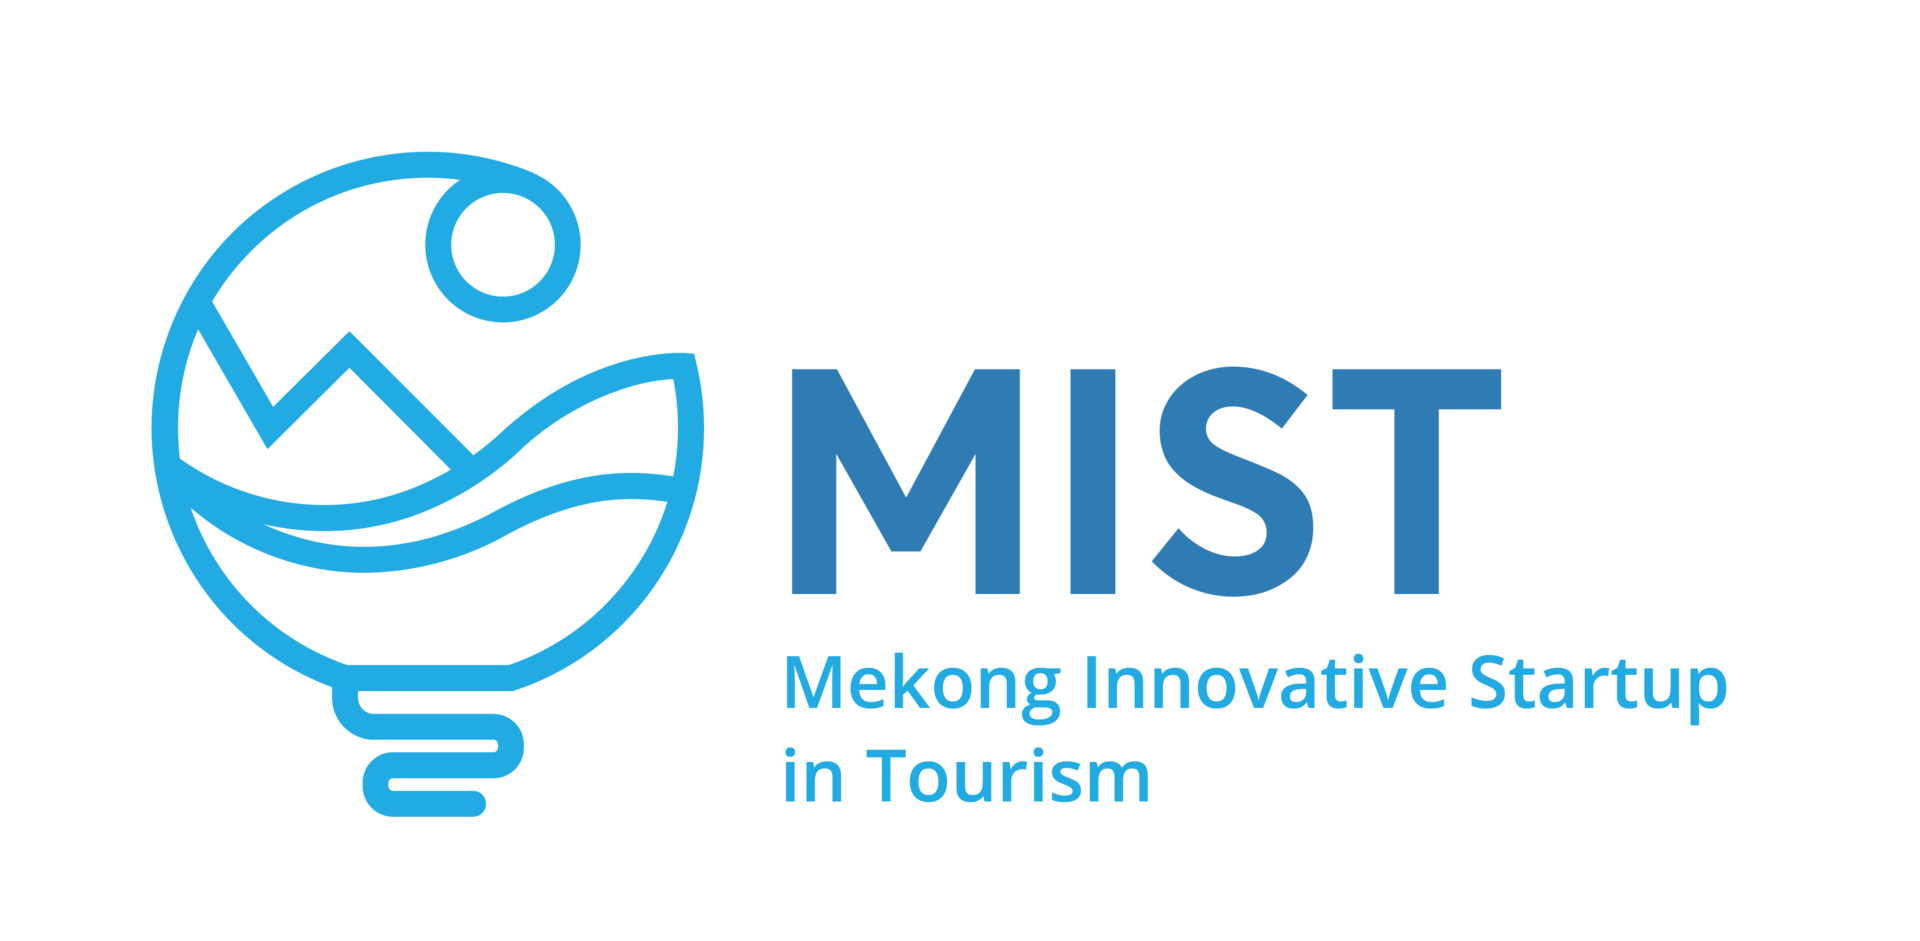 Mekong Innovative Startup in Tourism